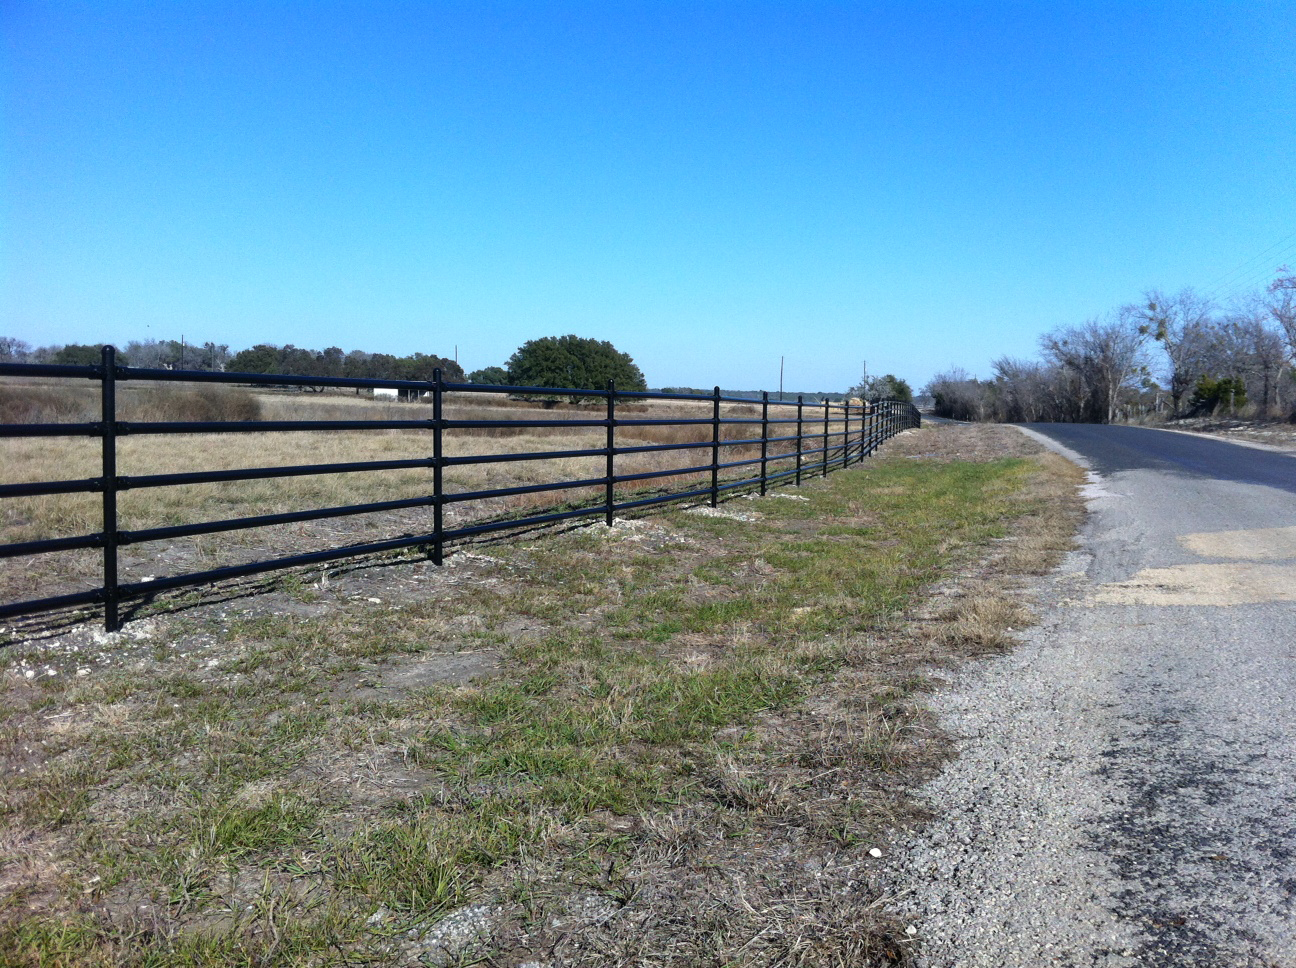 440  Pipe Fence - 20 year warranty on all materials.